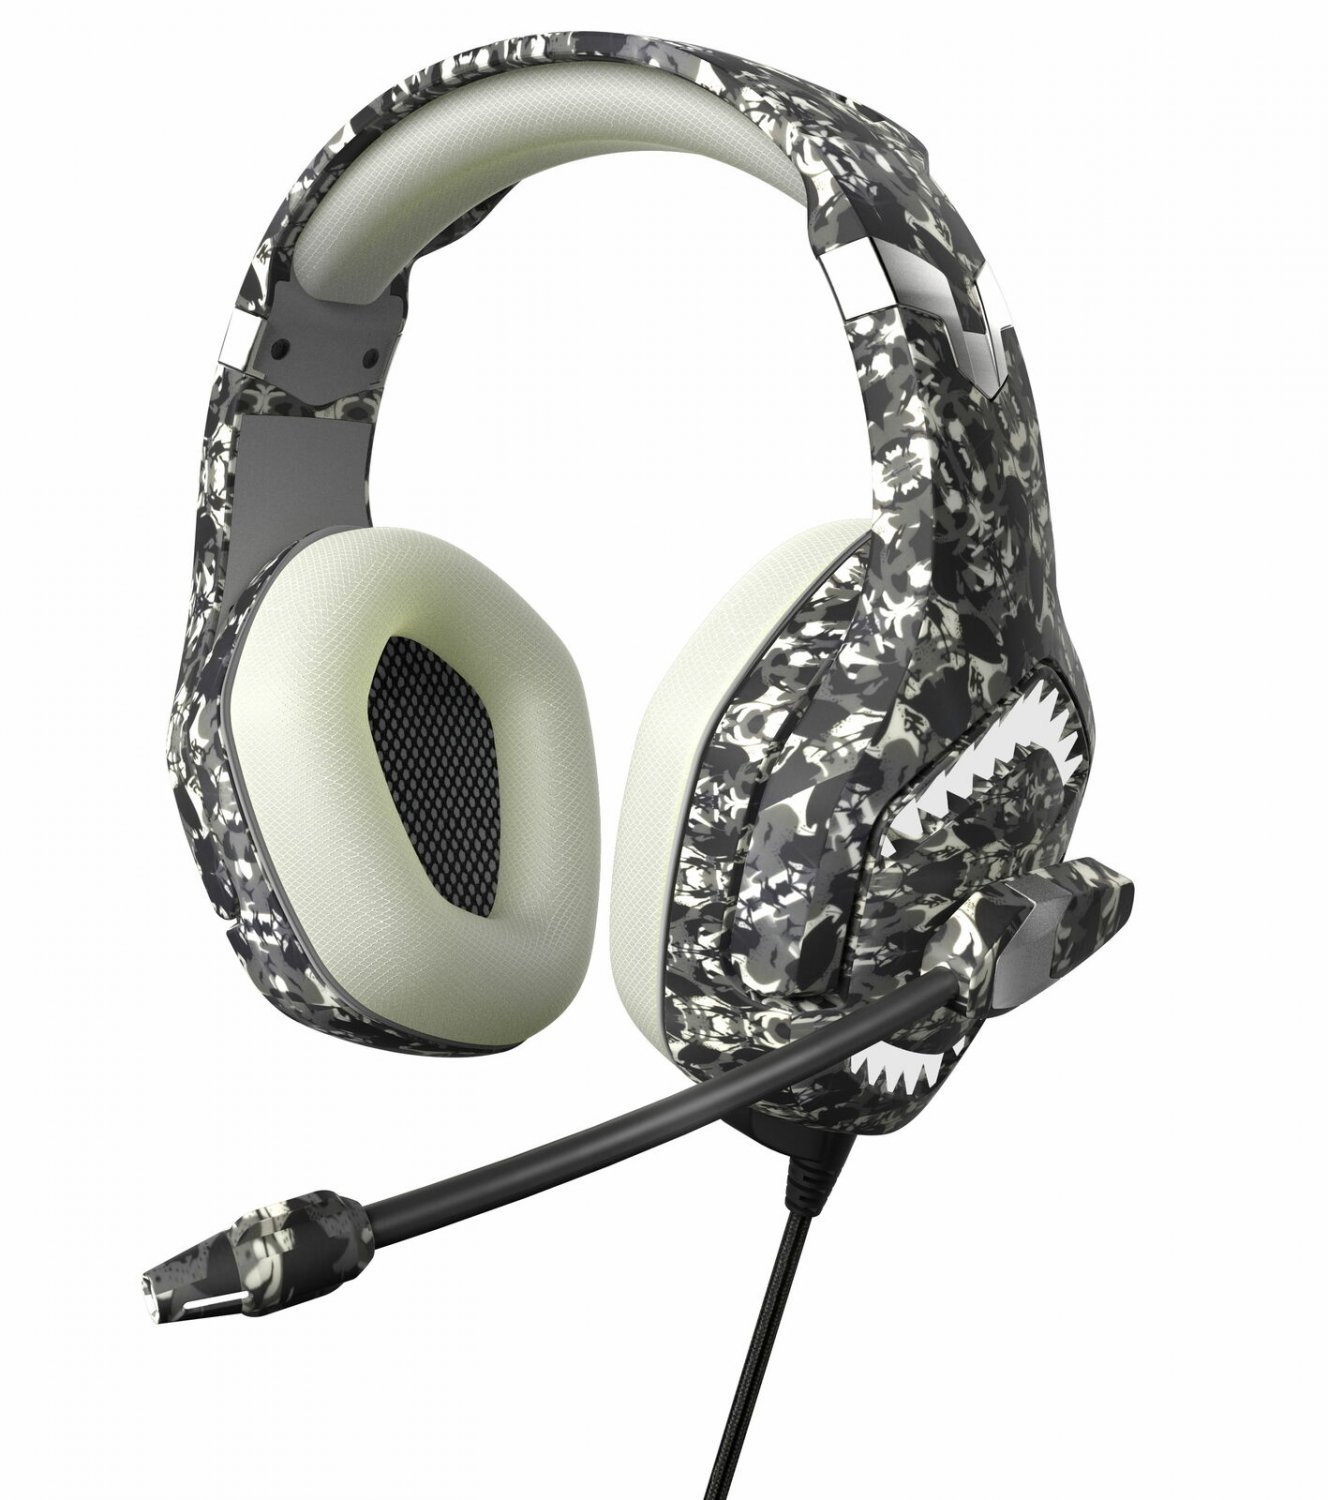 PC Gaming Headset K1 PRO CAMO For PS4 XBOX One GH Stereo USB Headphone